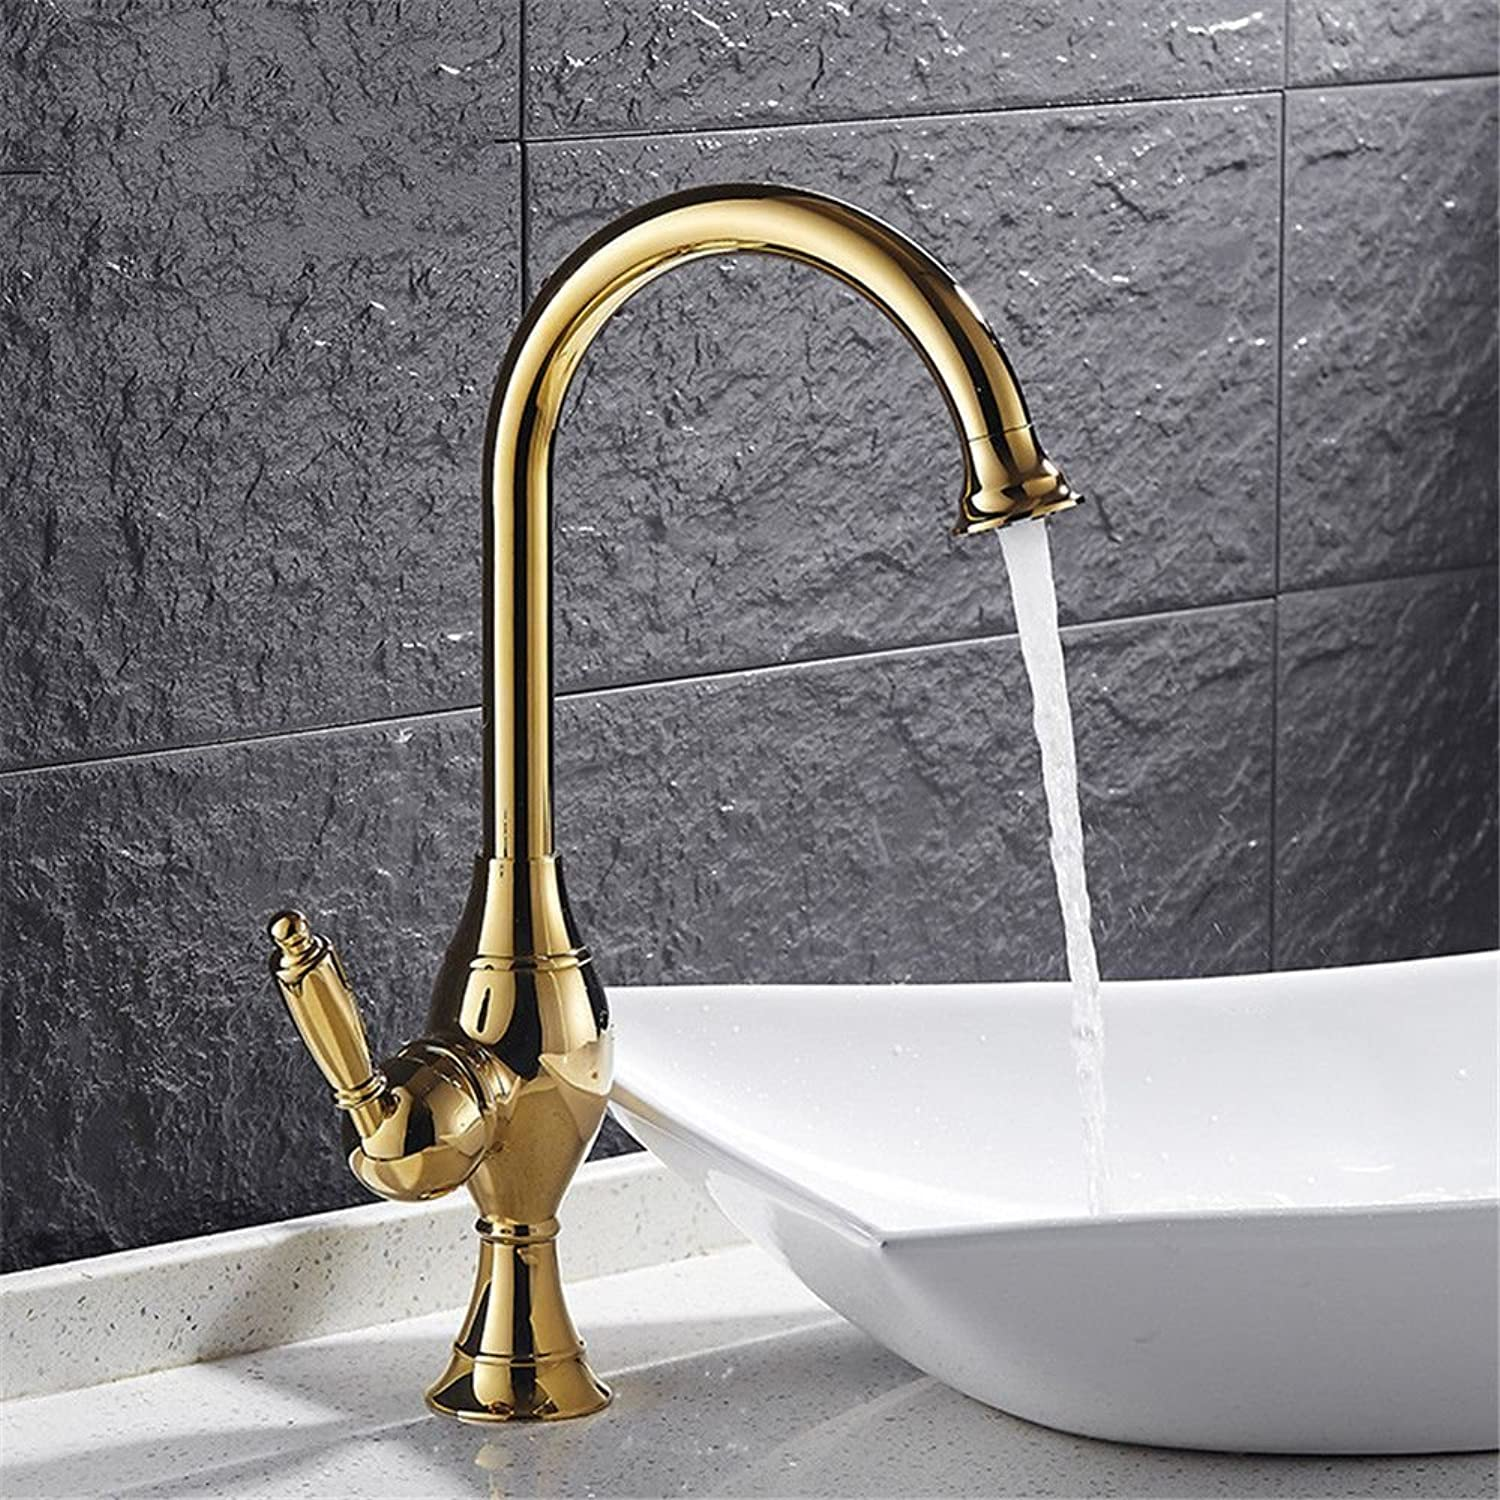 Gyps Faucet Basin Mixer Tap Waterfall Faucet Antique Bathroom Mixer Bar Mixer Shower Set Tap antique bathroom faucet Hot and cold water kitchen two bathrooms with basin mixer single hole full copper-w